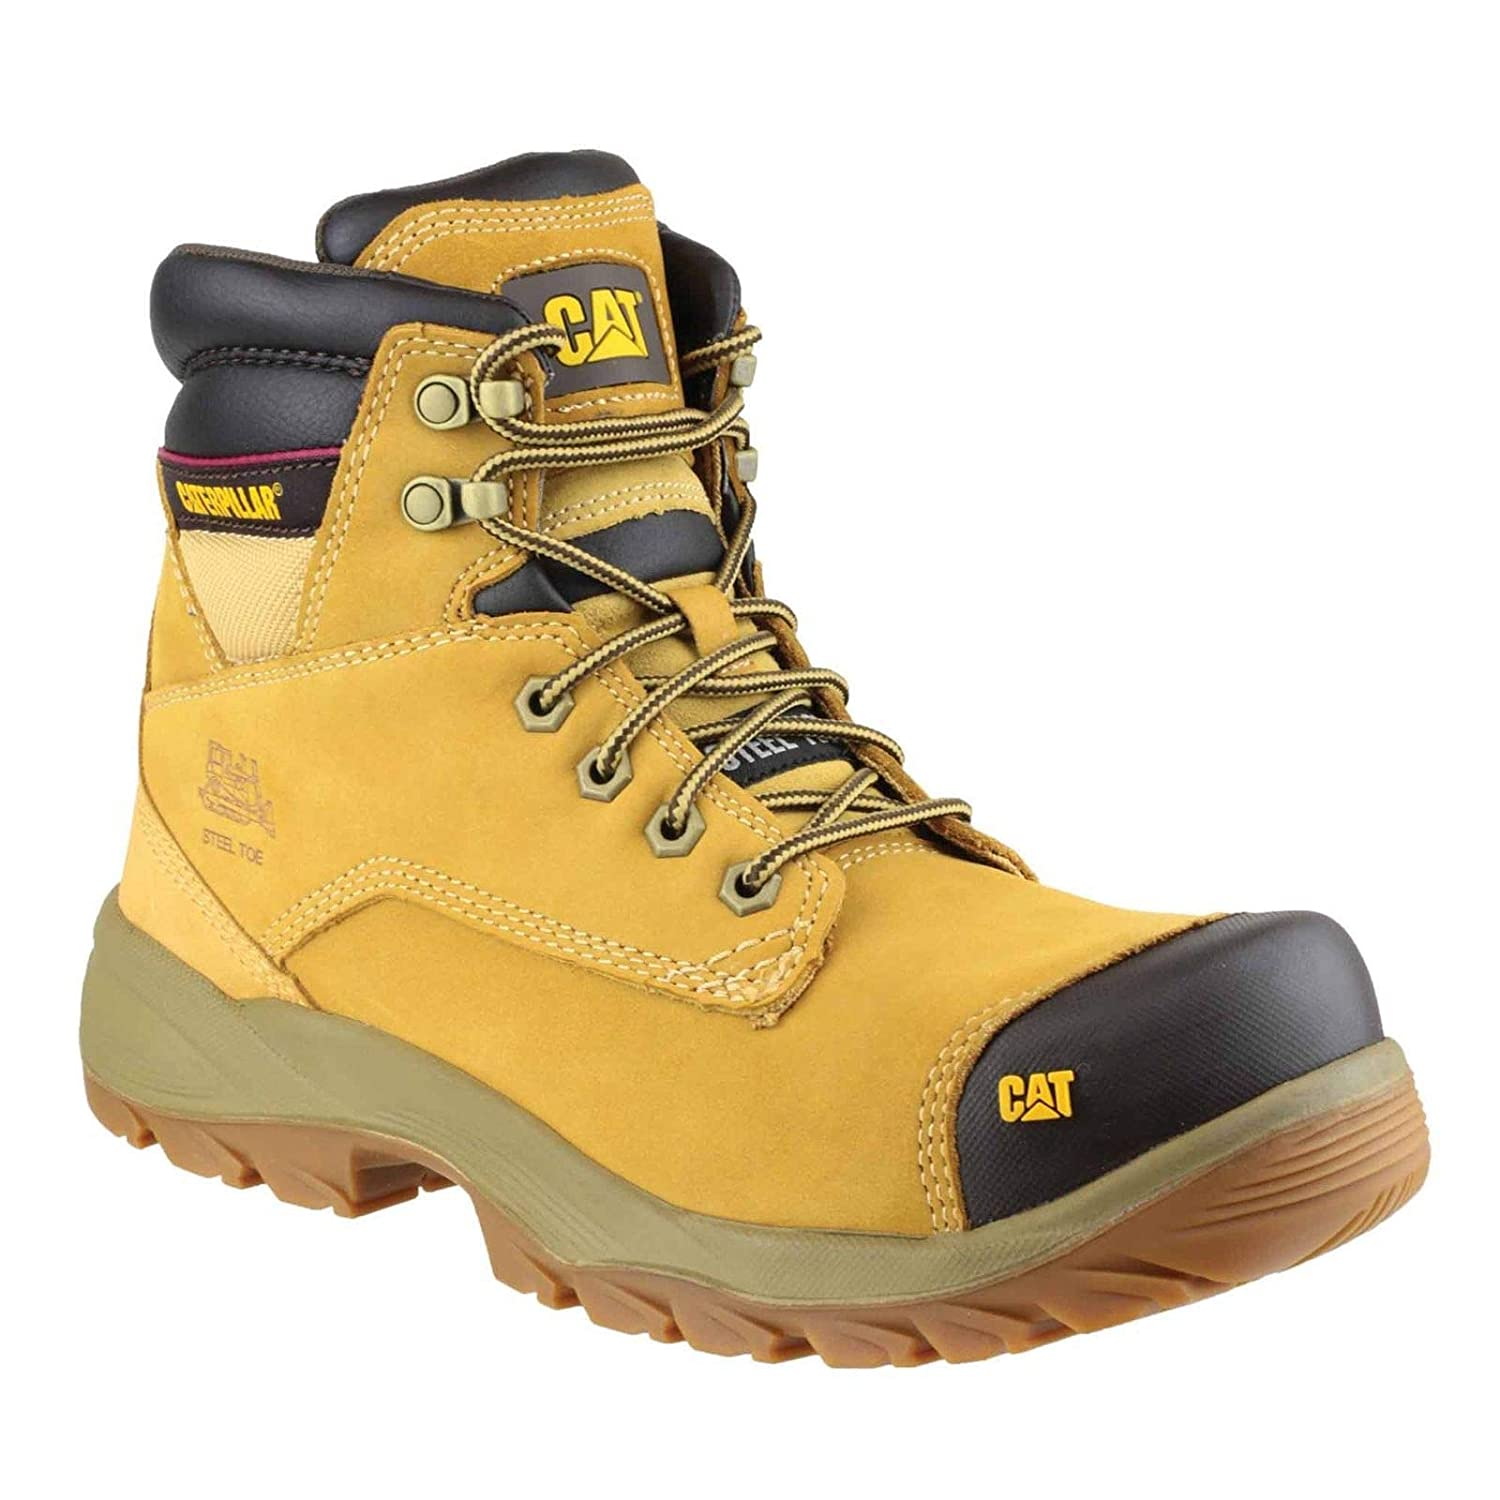 New FREE SHIPPING Various Sizes Cat Spiro Safety Work Boots Honey Colour